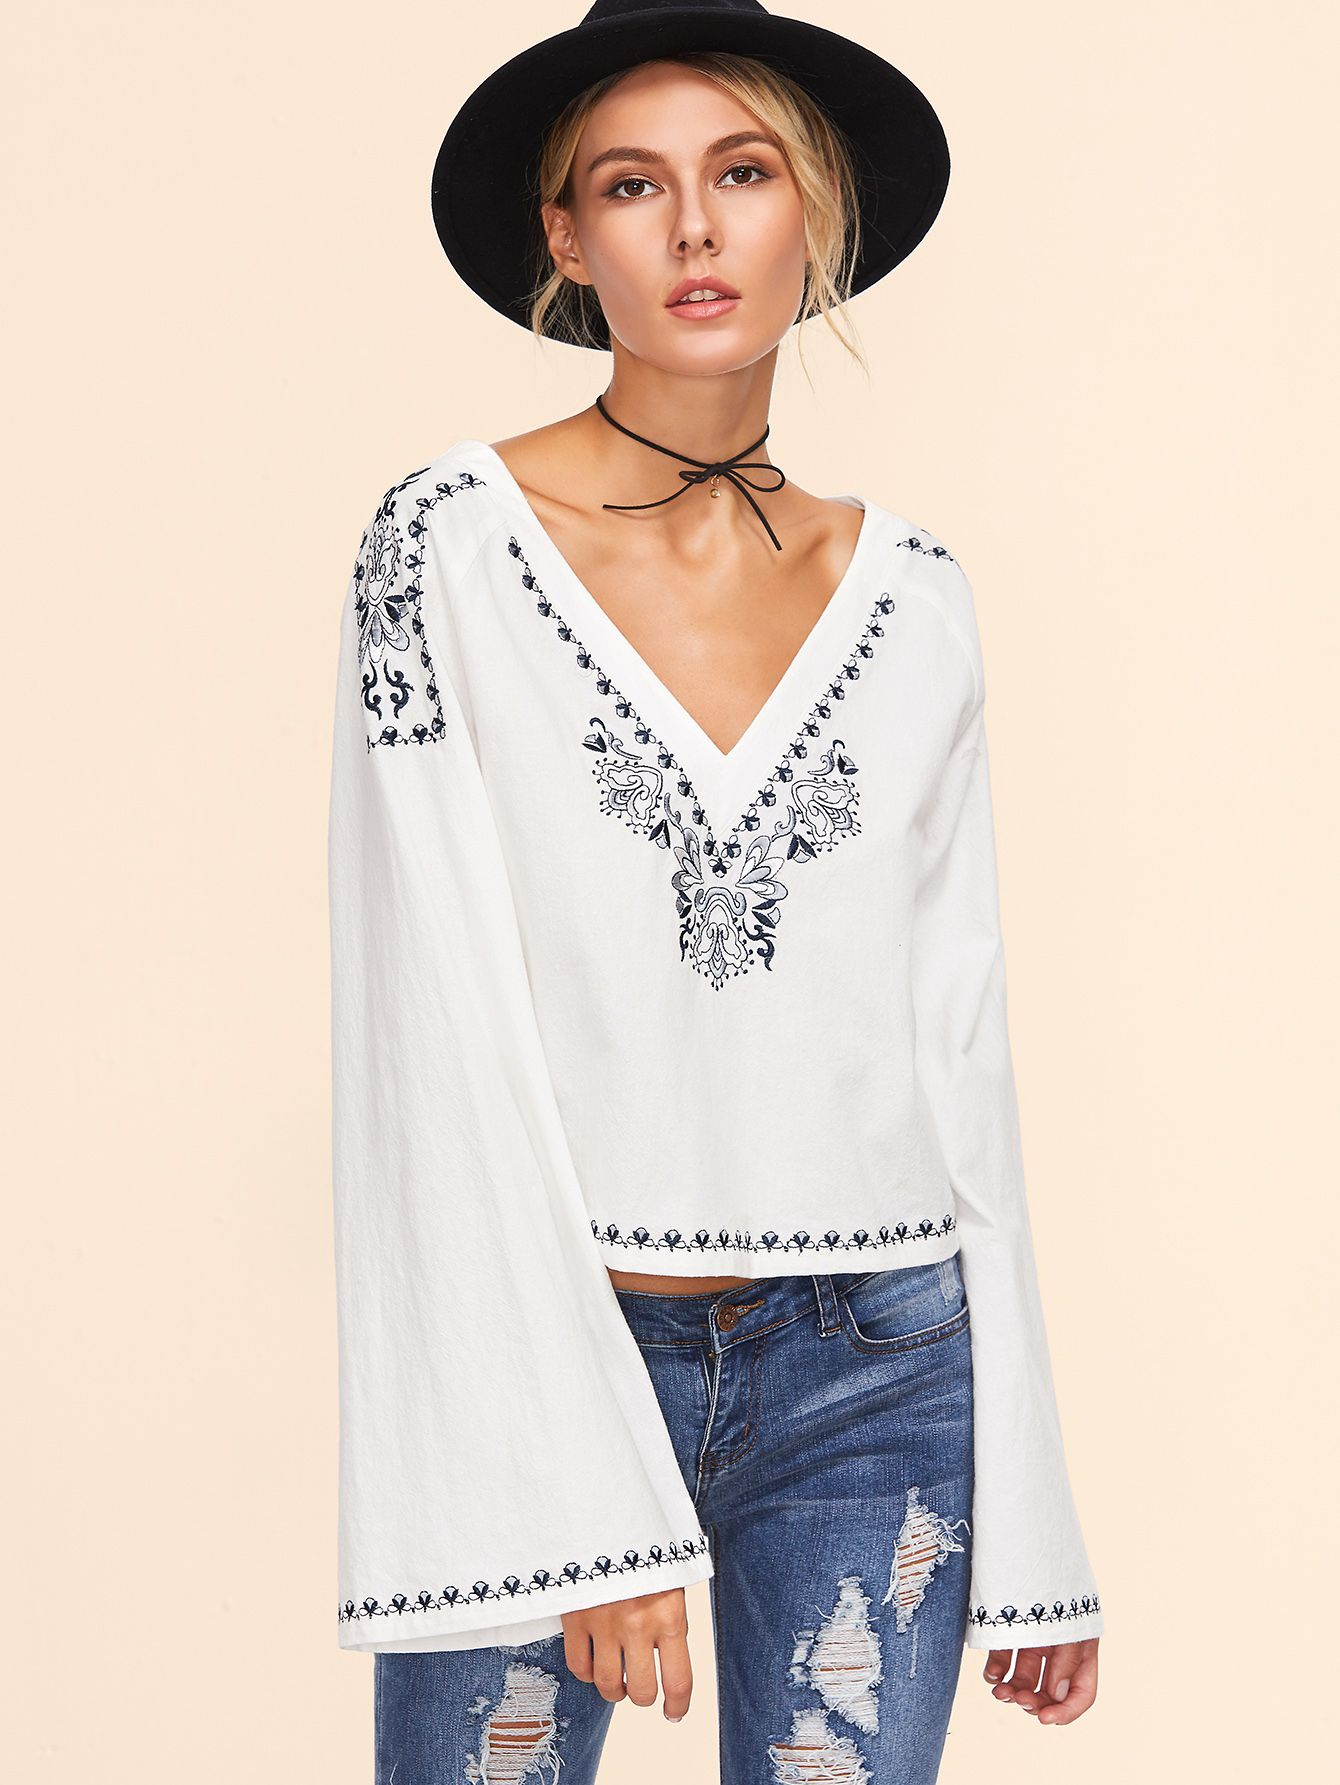 6352a70bbd427e Online shopping for White Double V Neck Bell Sleeve Embroidered Top from a  great selection of women's fashion clothing & more at MakeMeChic.COM.